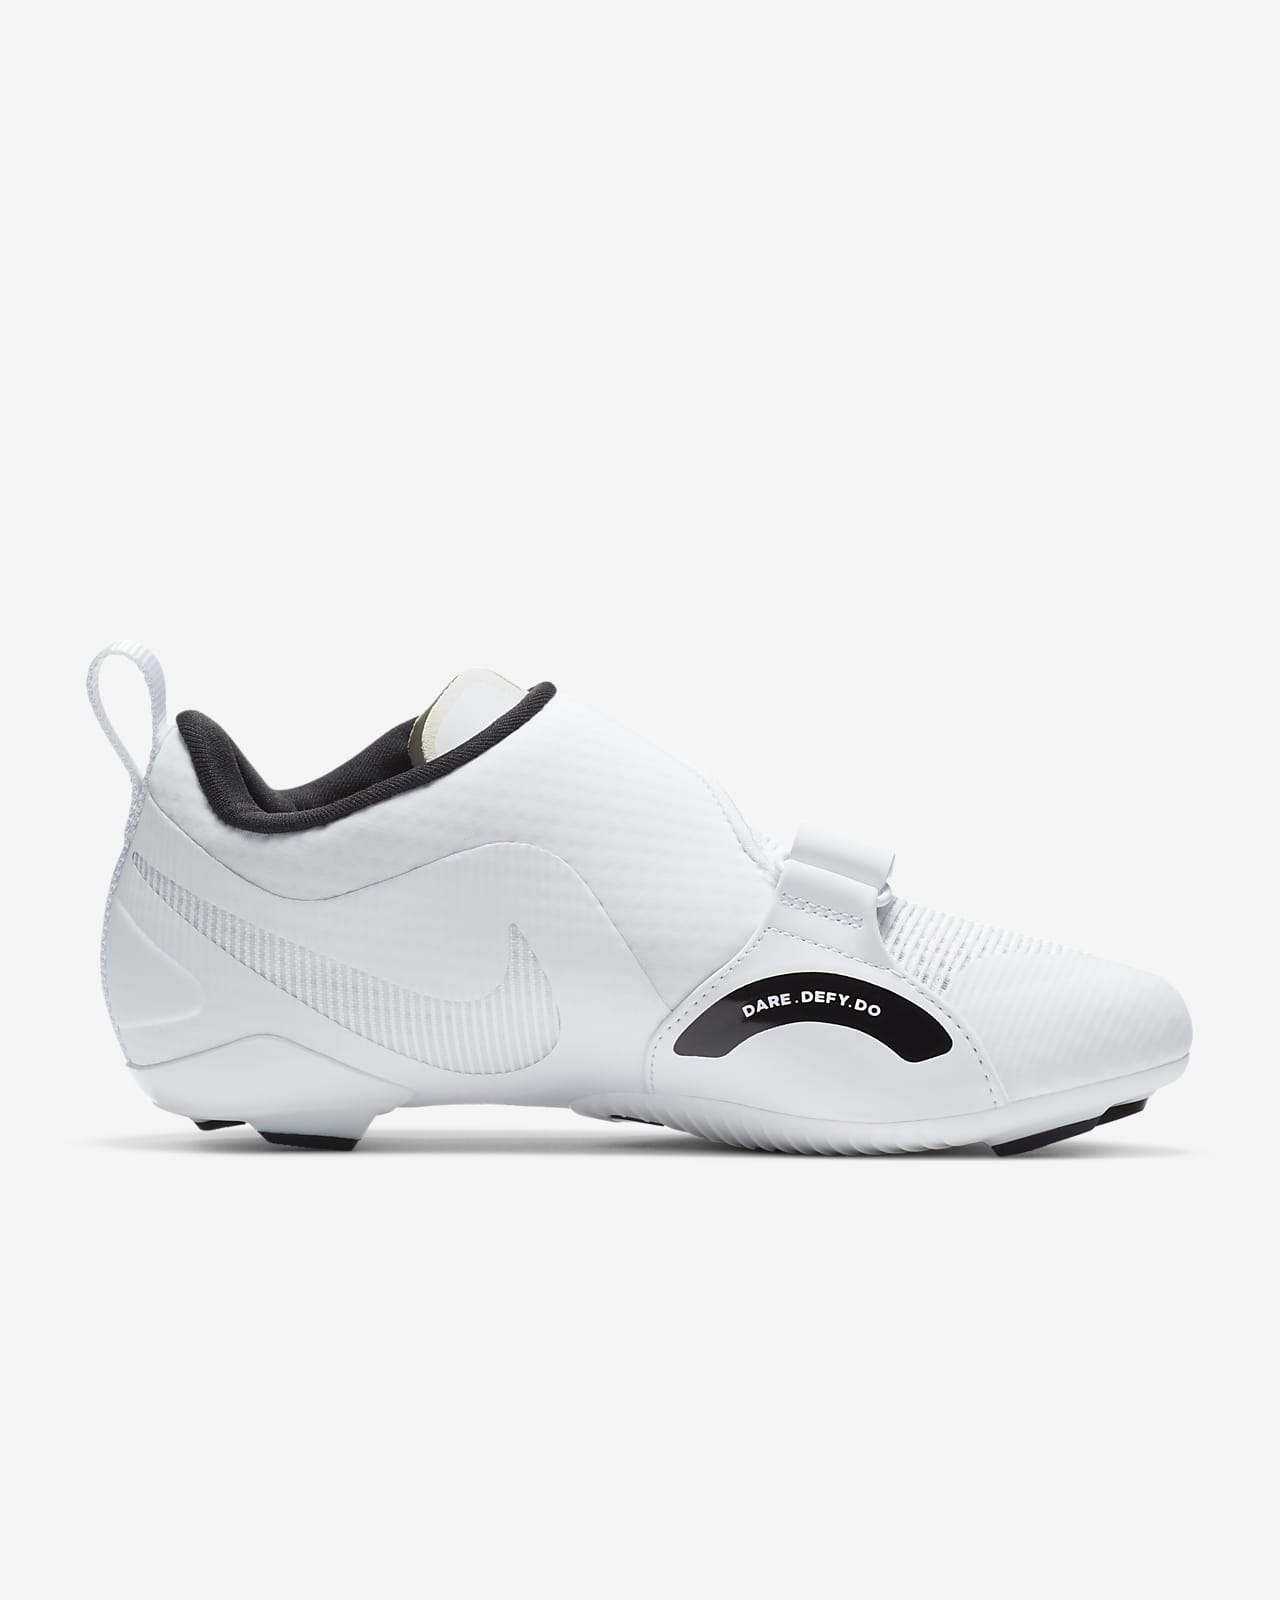 heroico Colibrí Contar  Nike SuperRep Cycle Women's Indoor Cycling Shoe. Nike.com